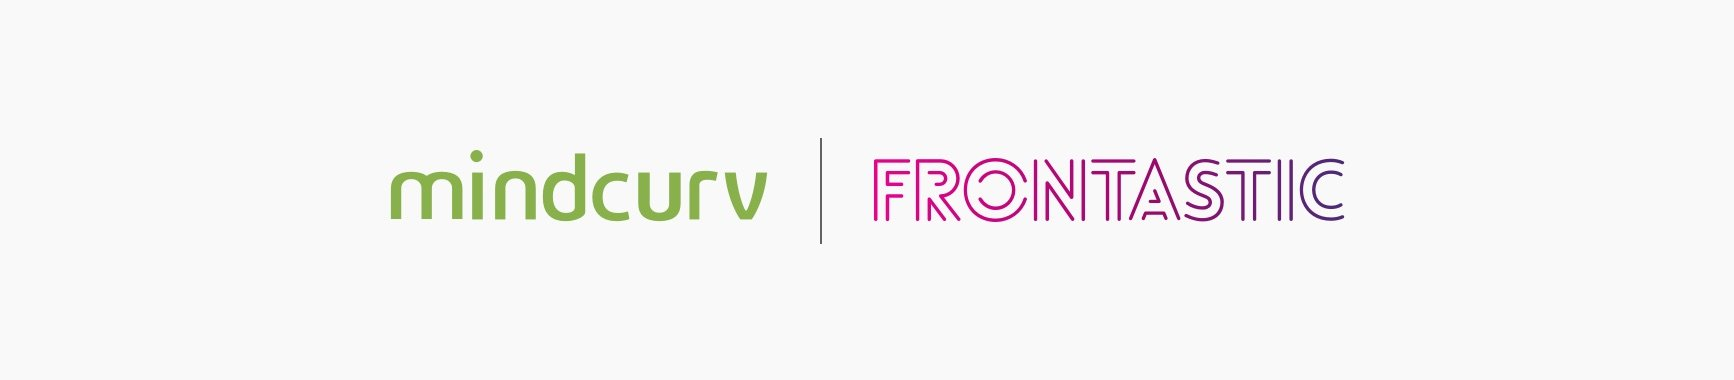 mindcurv and frontastic logos banner